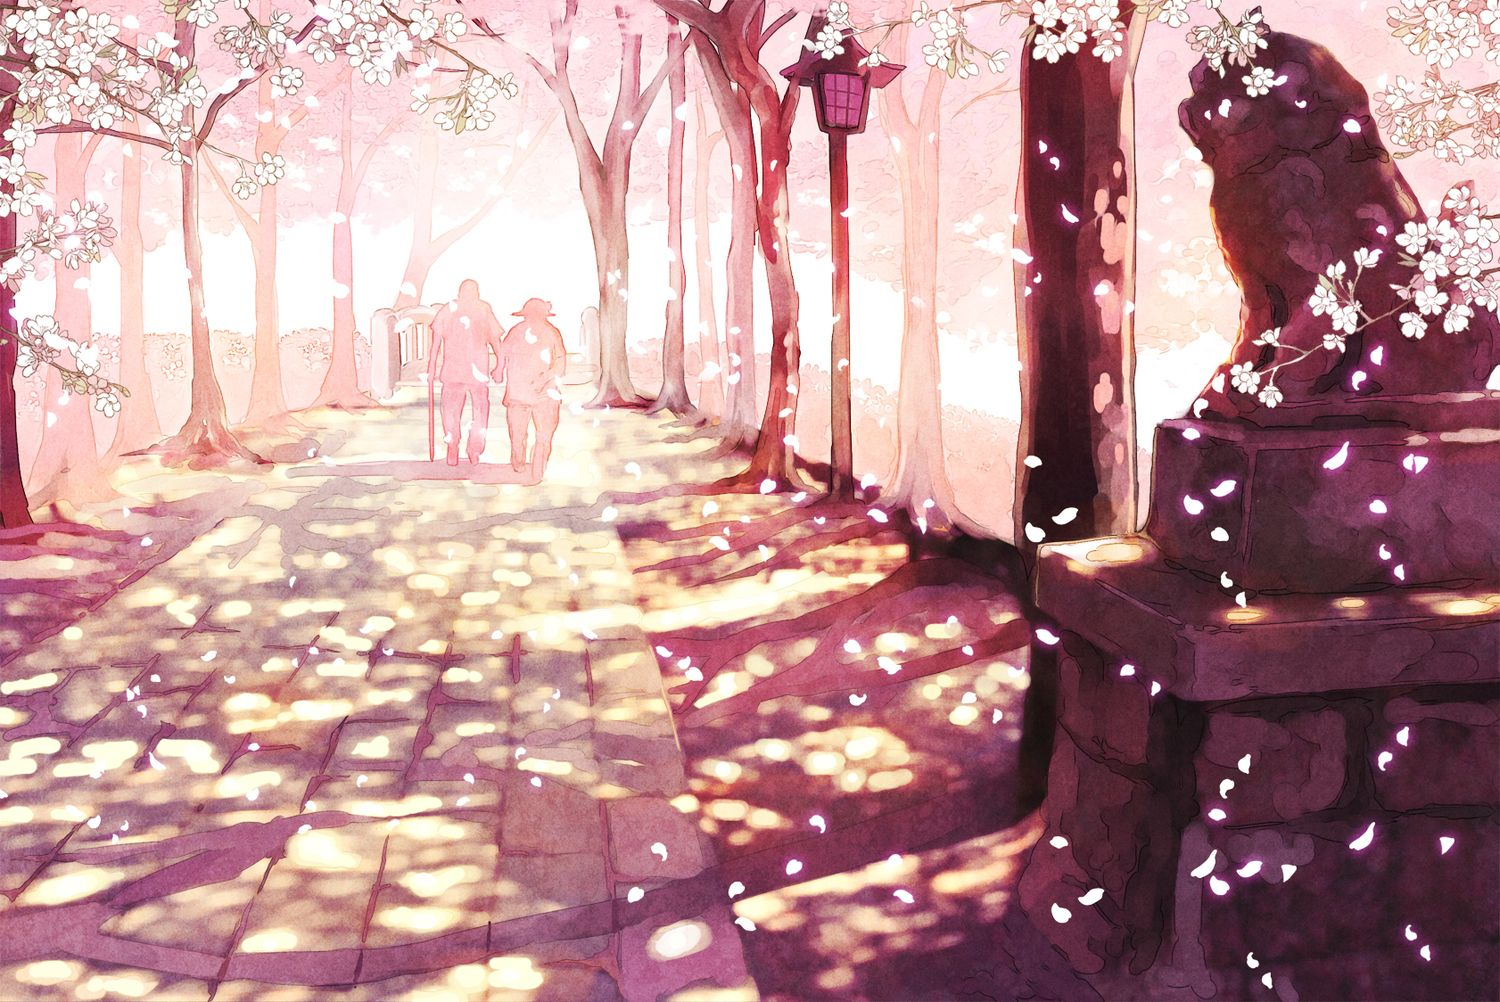 anime scenery backgrounds